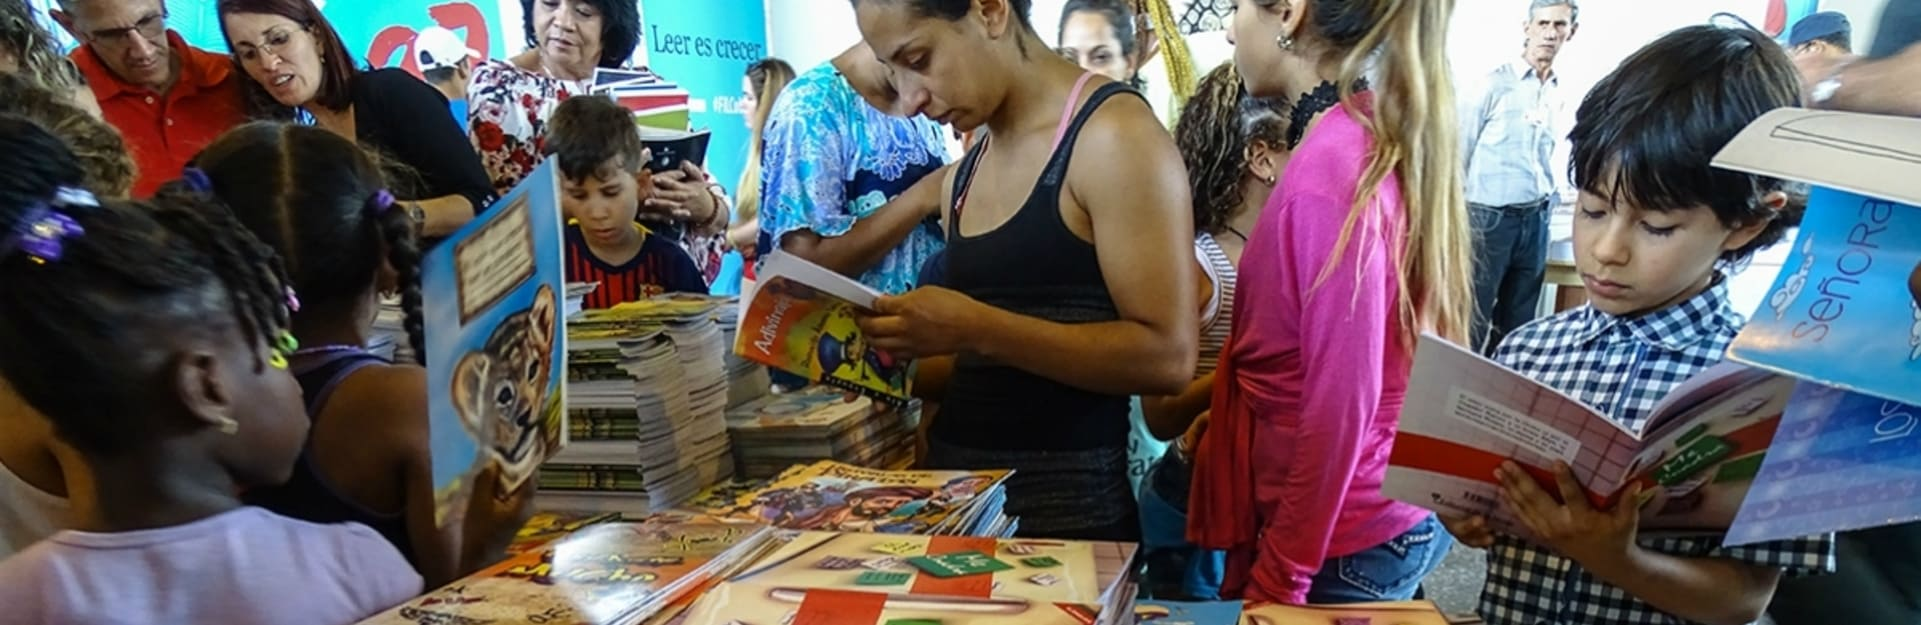 Book Fair, City of Matanzas, Cuba